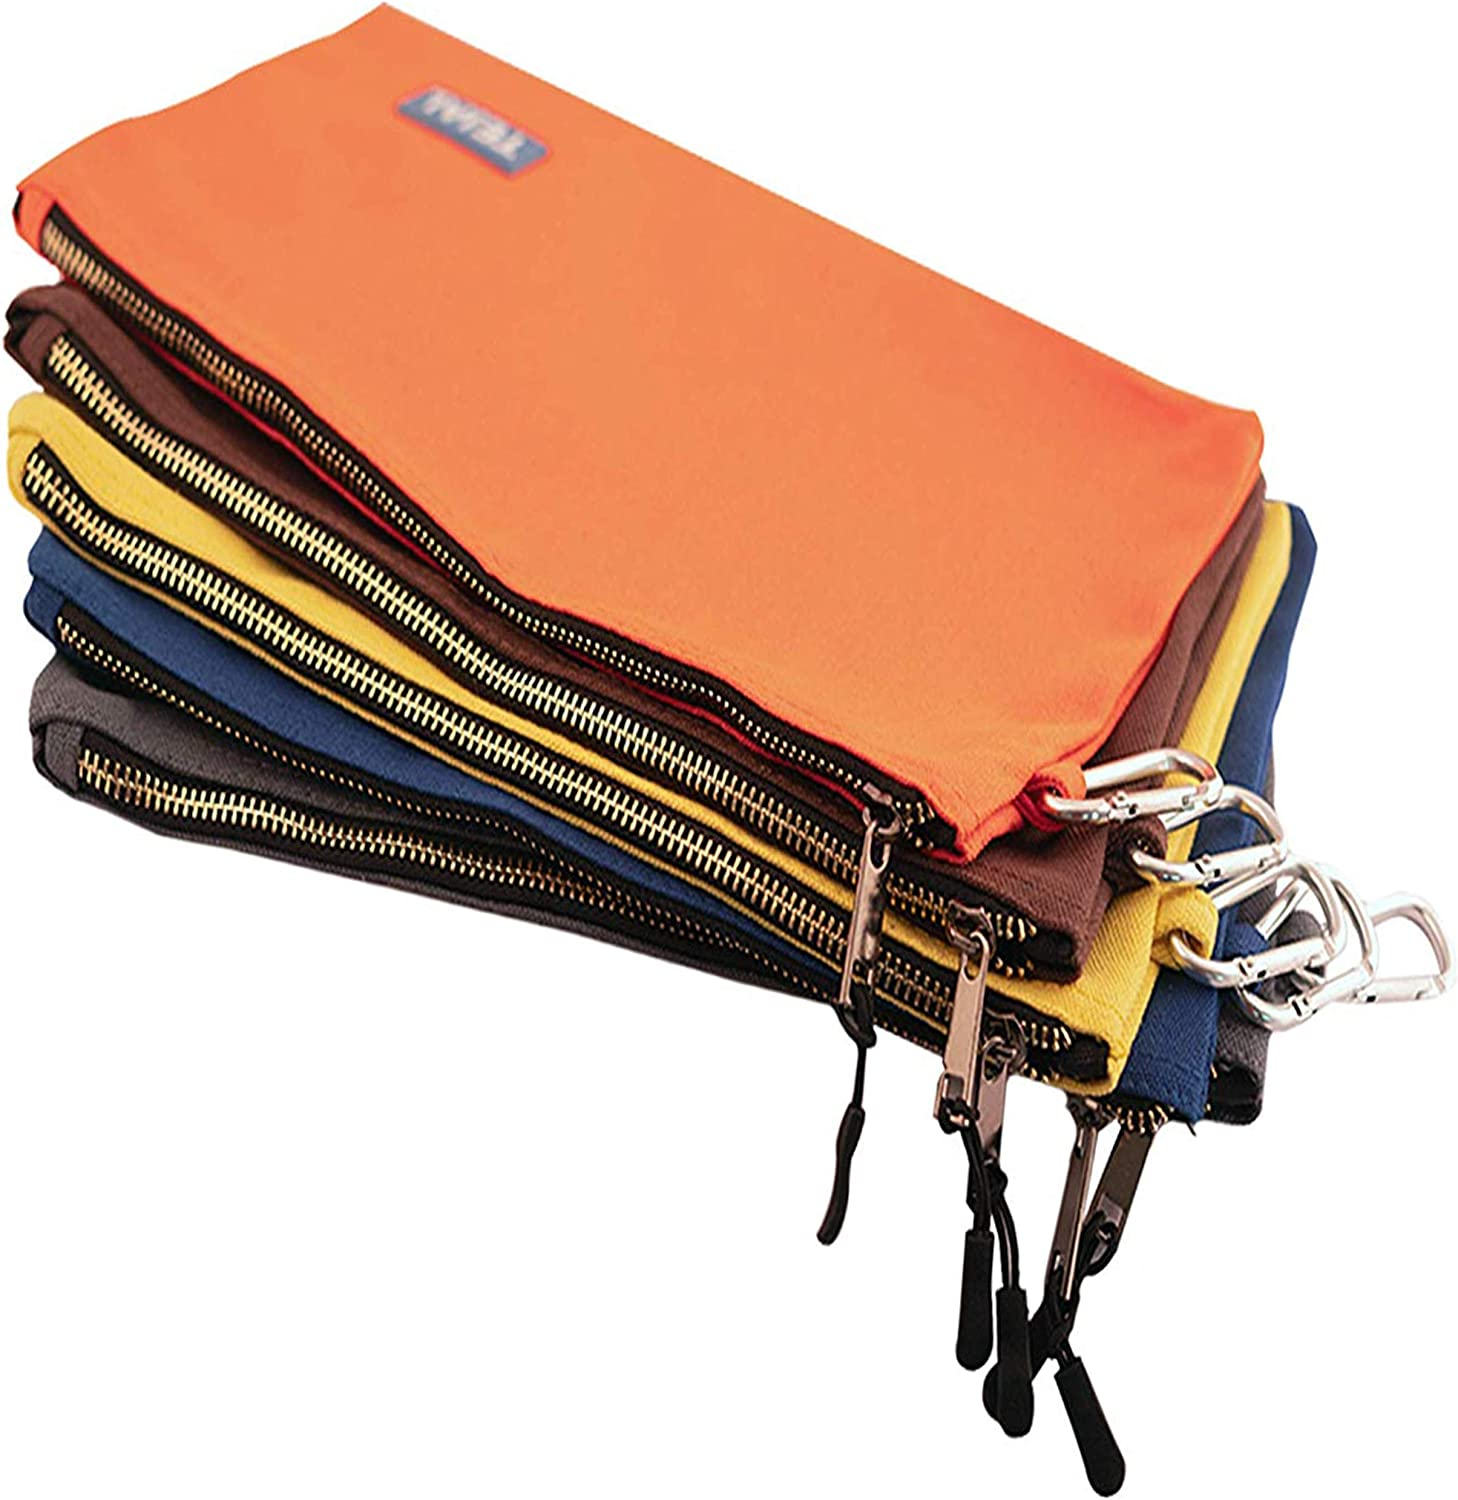 TEJAL Utility Easy-to-use Canvas Zipper Tool Jacksonville Mall Bag wi Pouch Heavy Duty - Tools